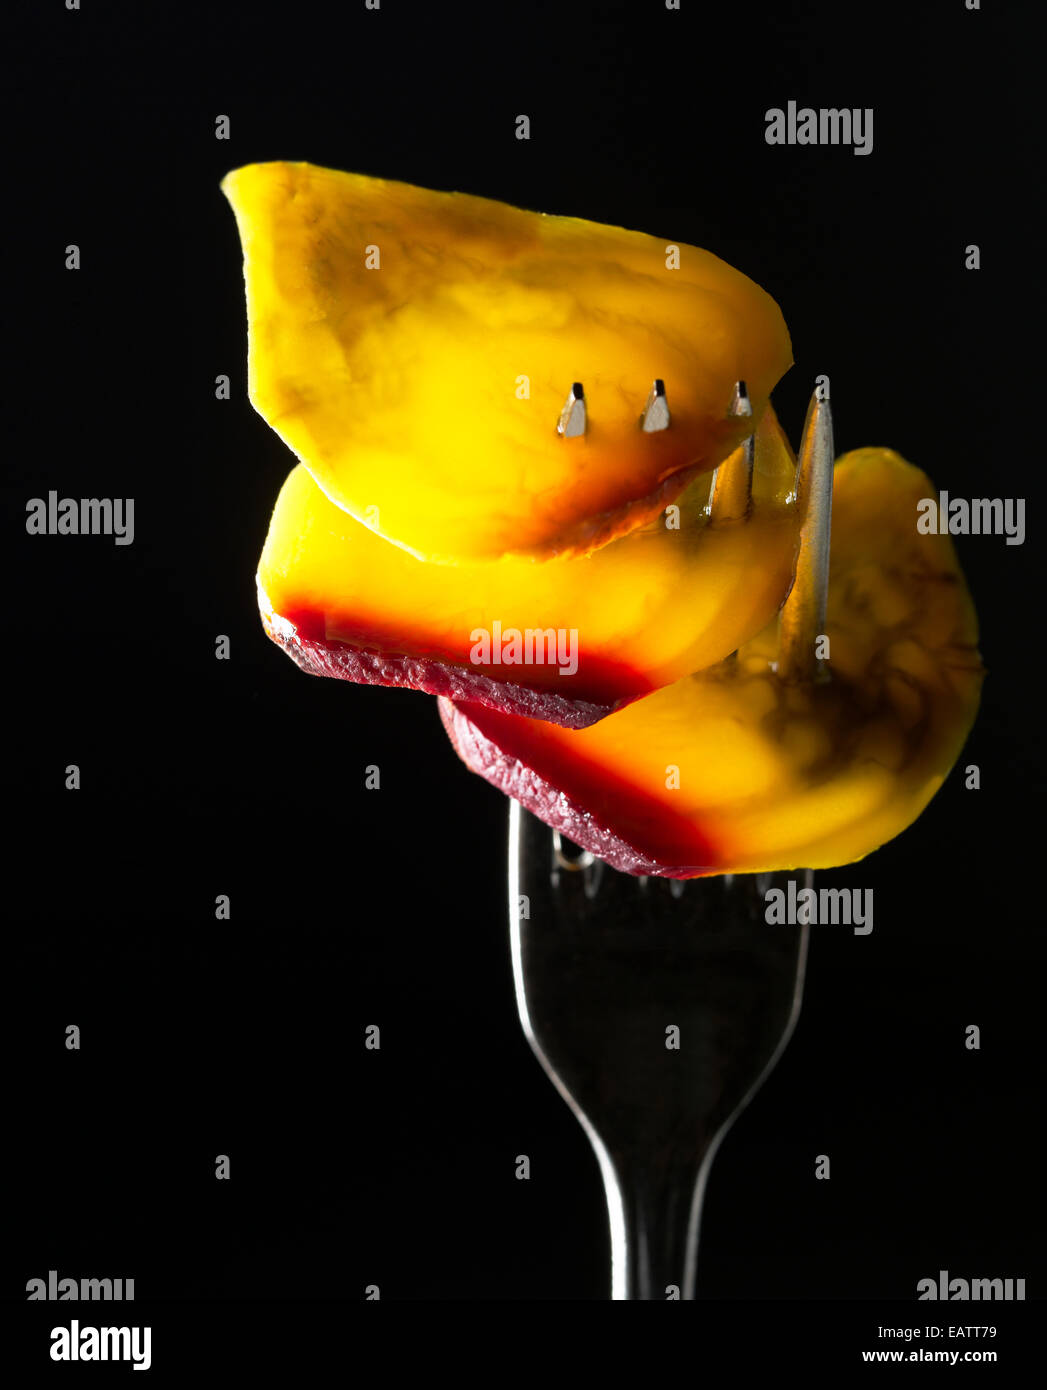 Yellow beets on a silver fork against black background - Stock Image